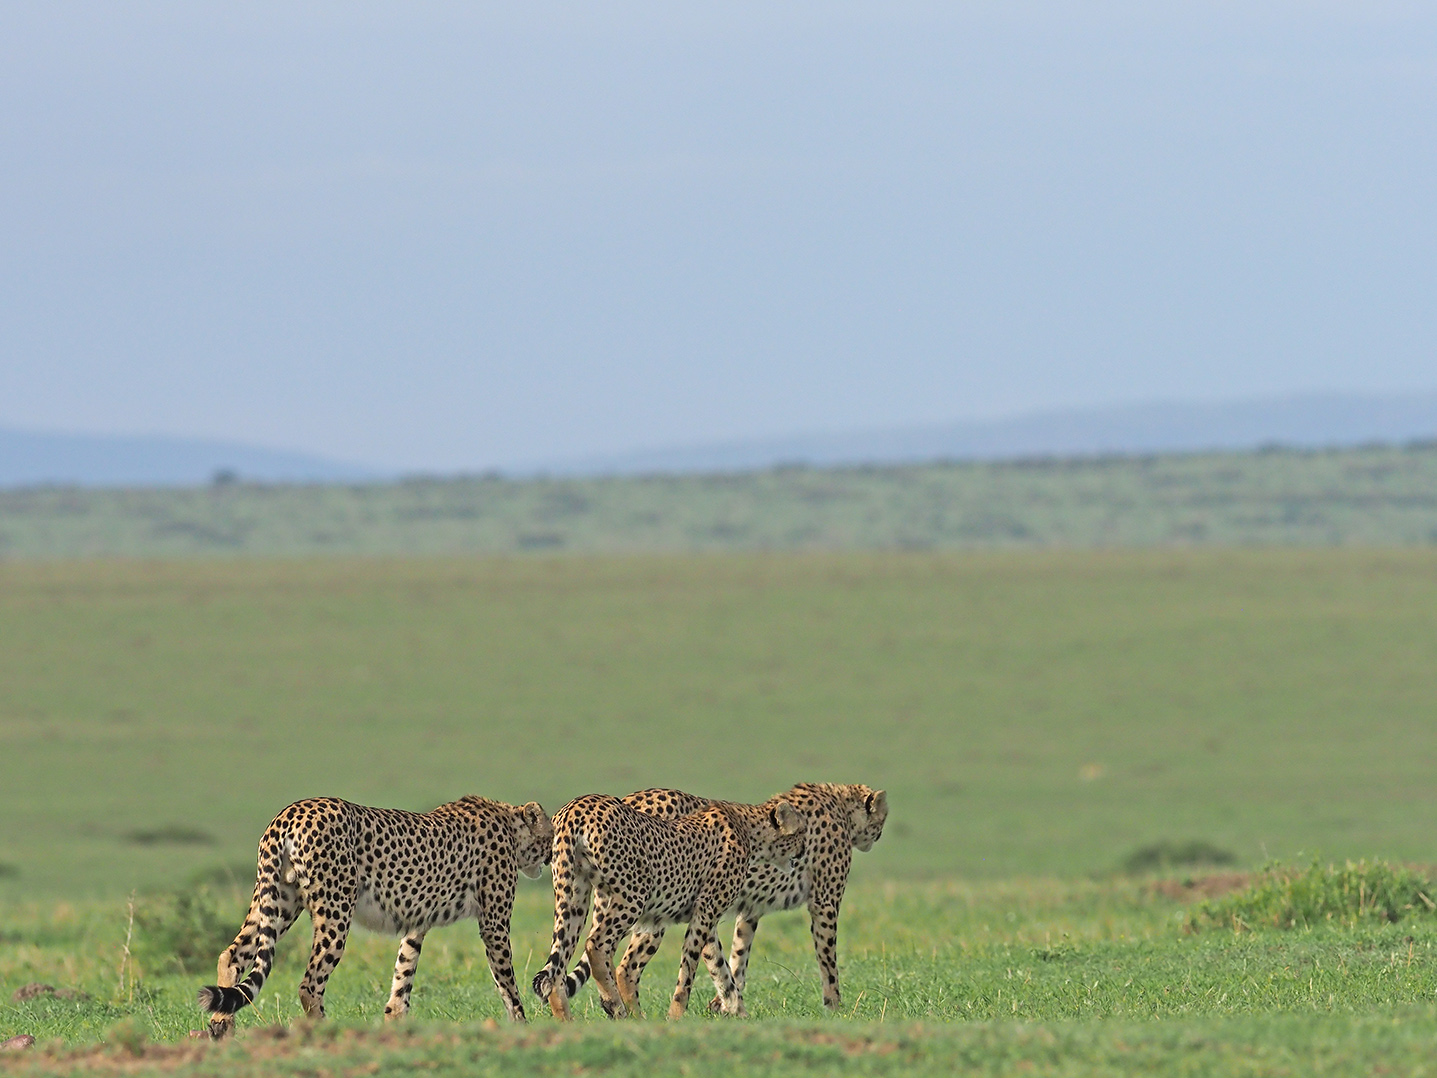 Cheetahs by Ranjan Ramchandani